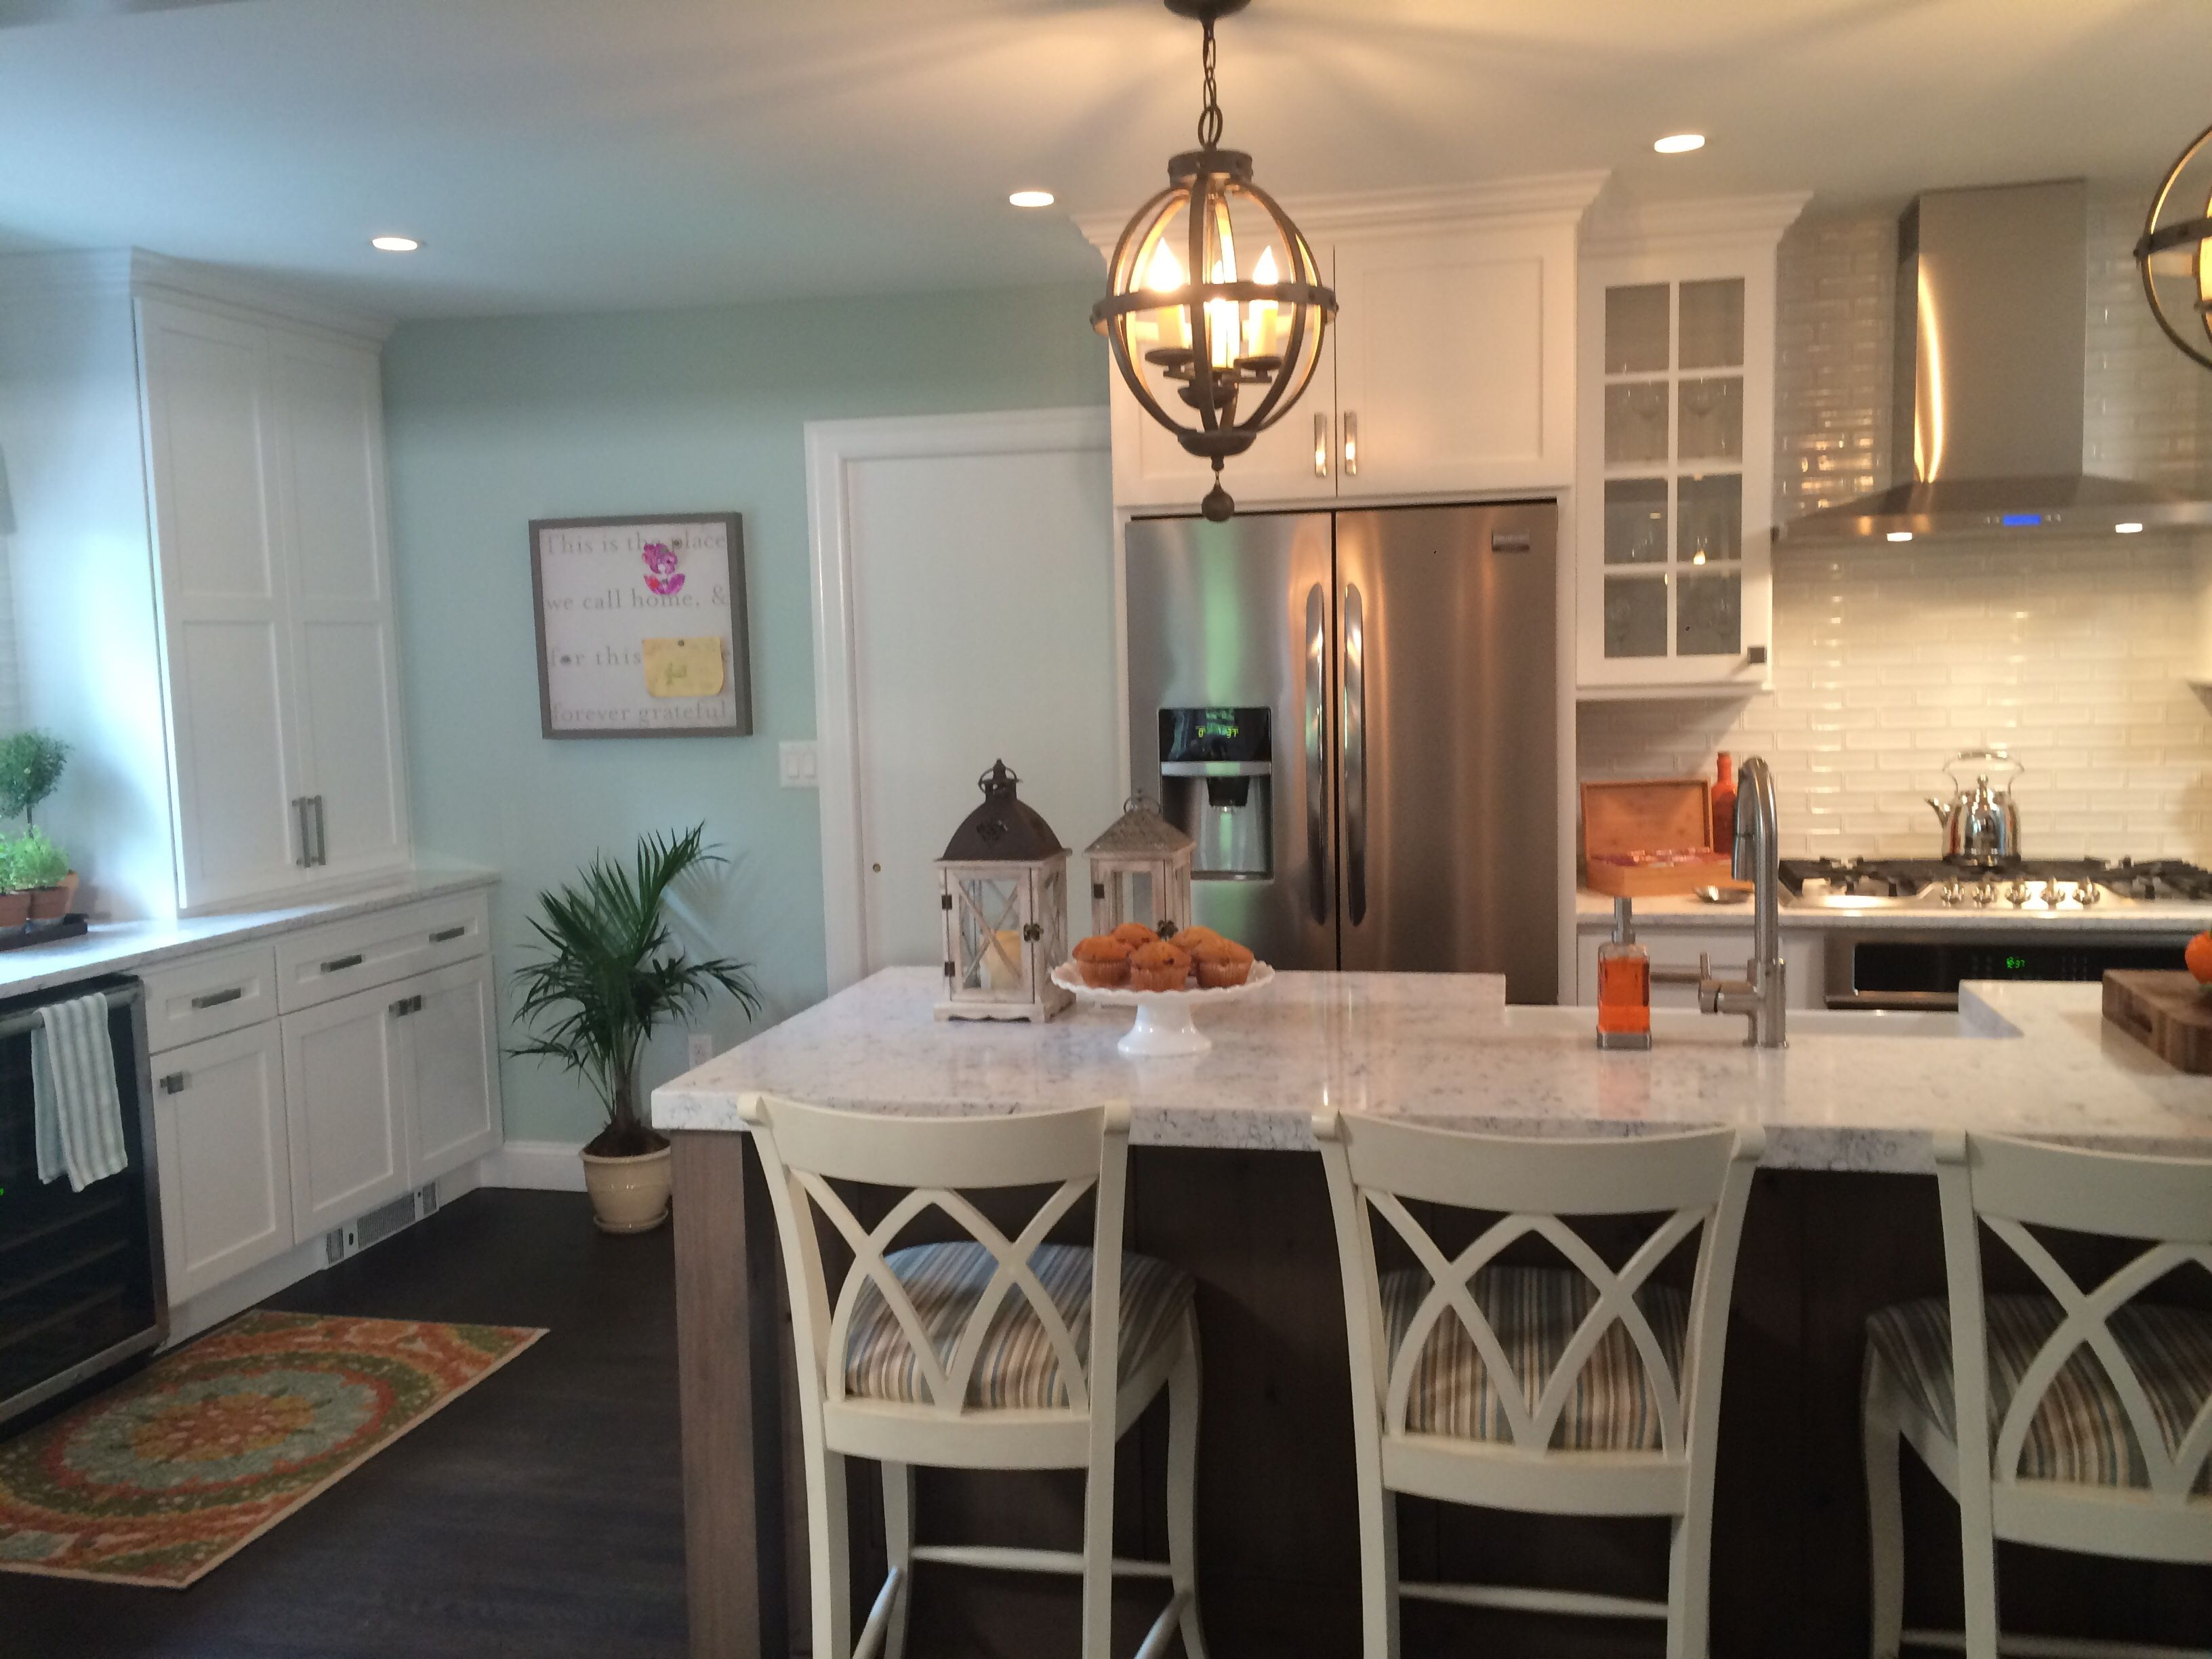 Kevin and Shirley s kitchen on Property Brothers features Savoy